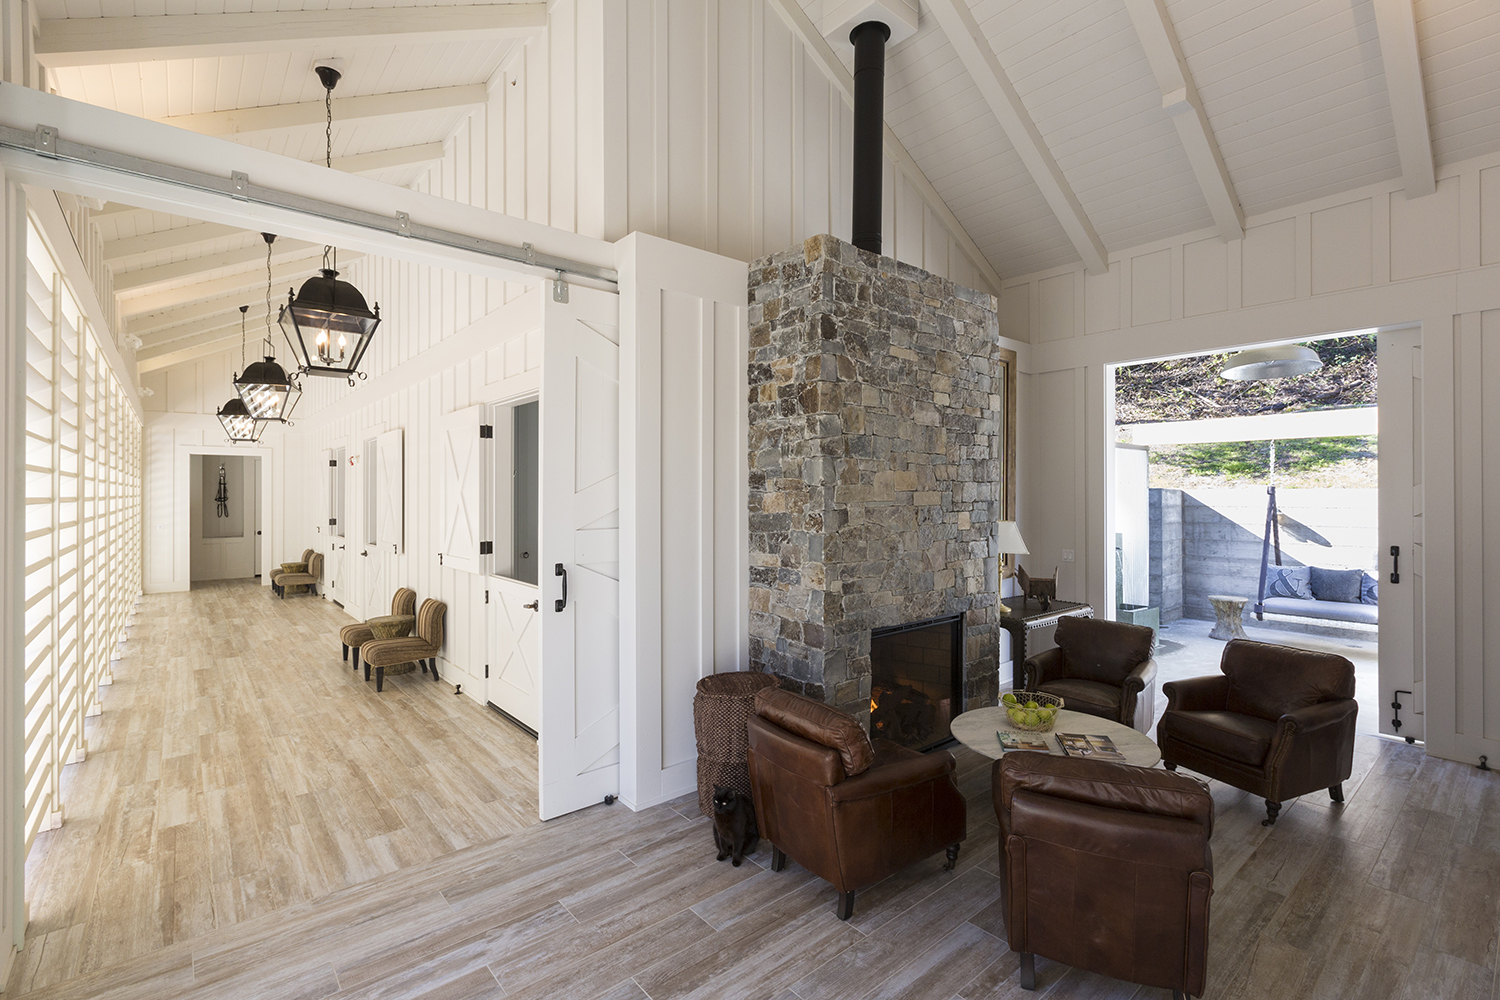 Farmhouse Spa Lobby Hallway.jpg